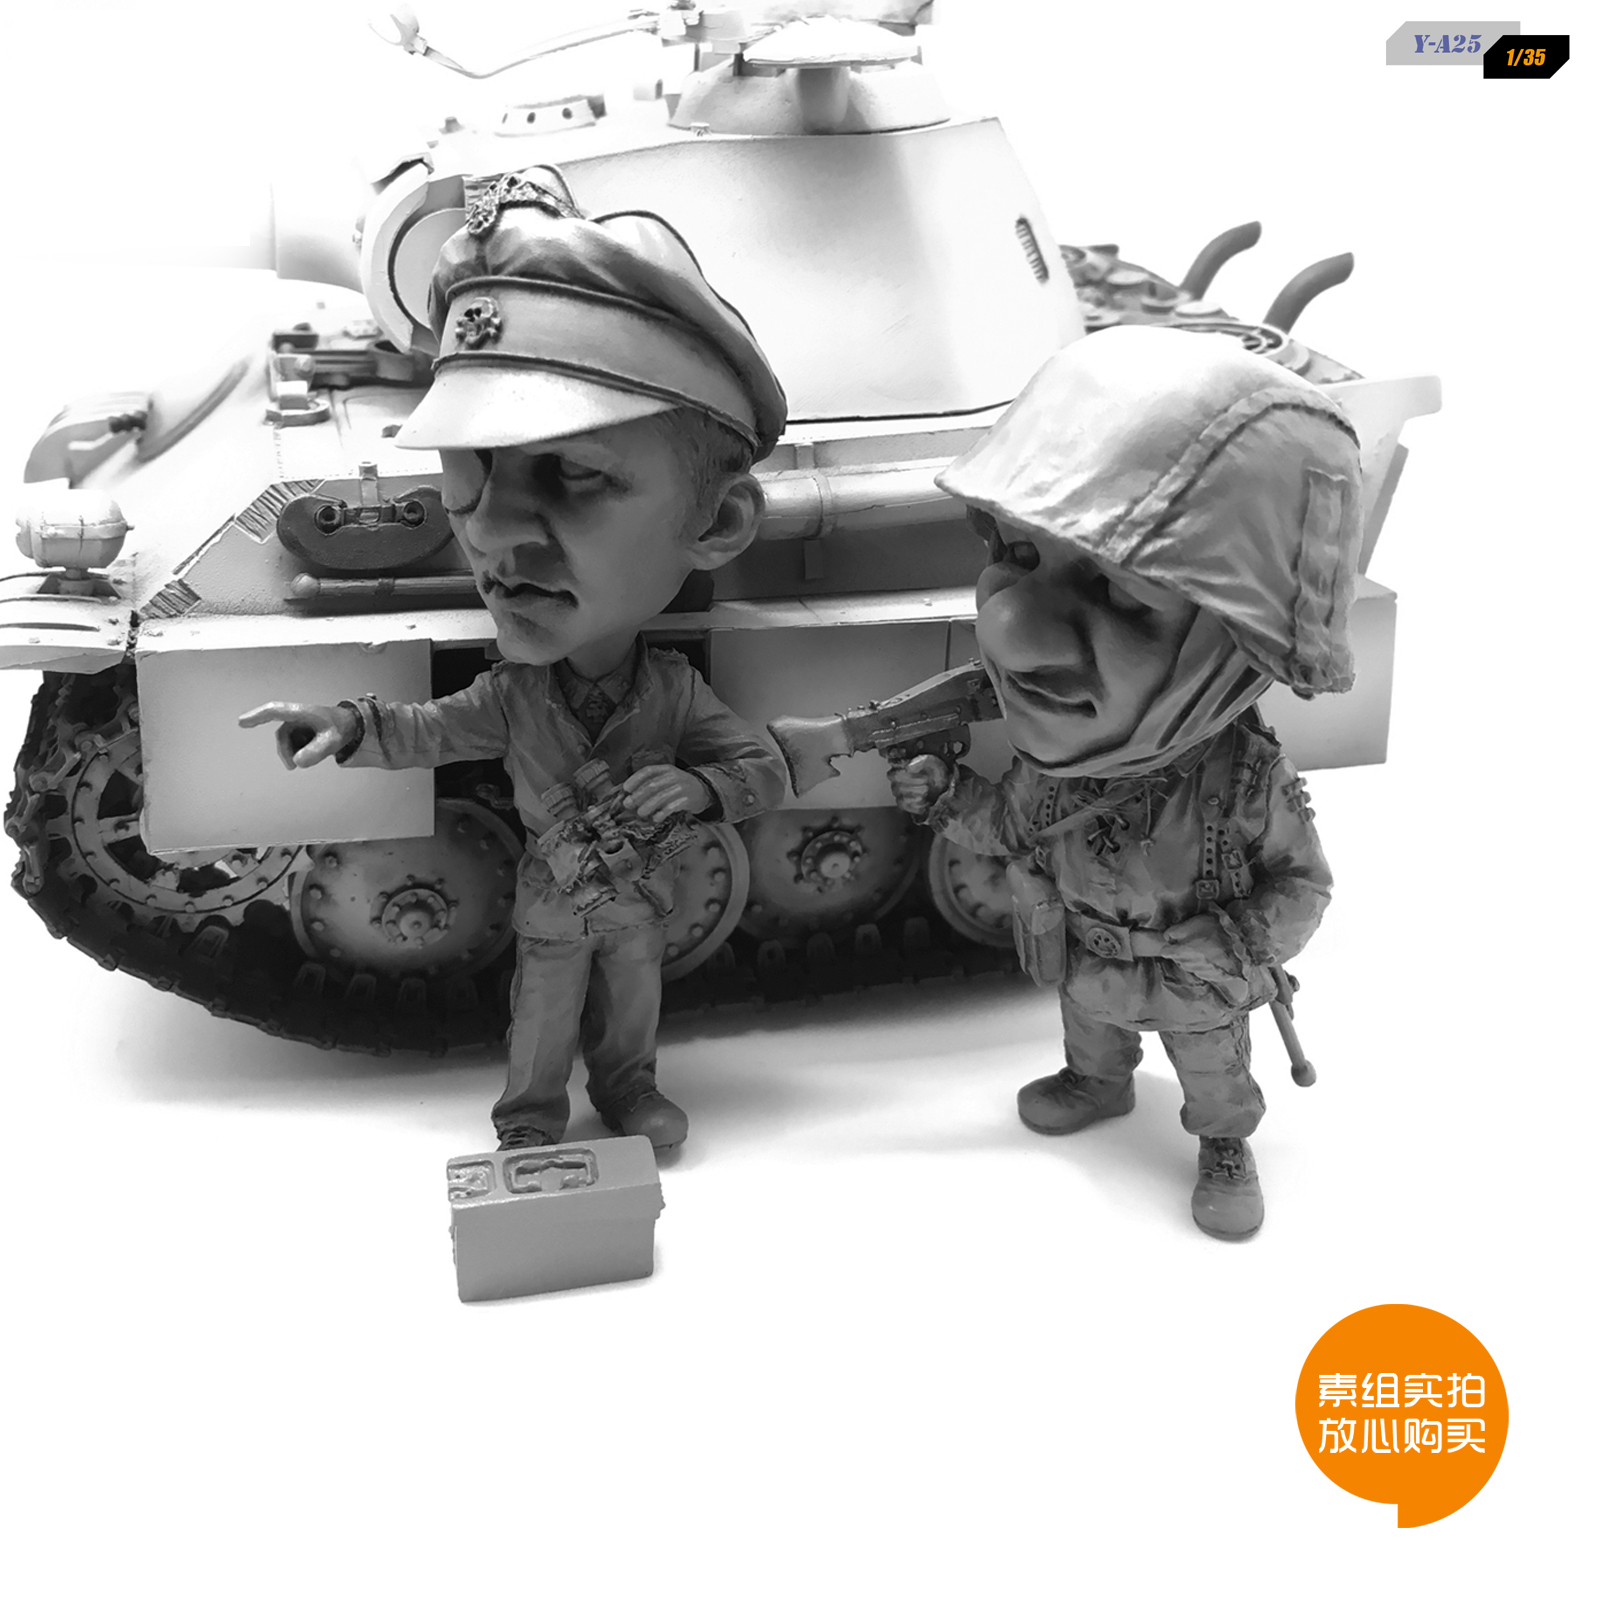 Q Resin Kits Edition resin assembled tank plus Q version of the soldier suit self assembled Y A25